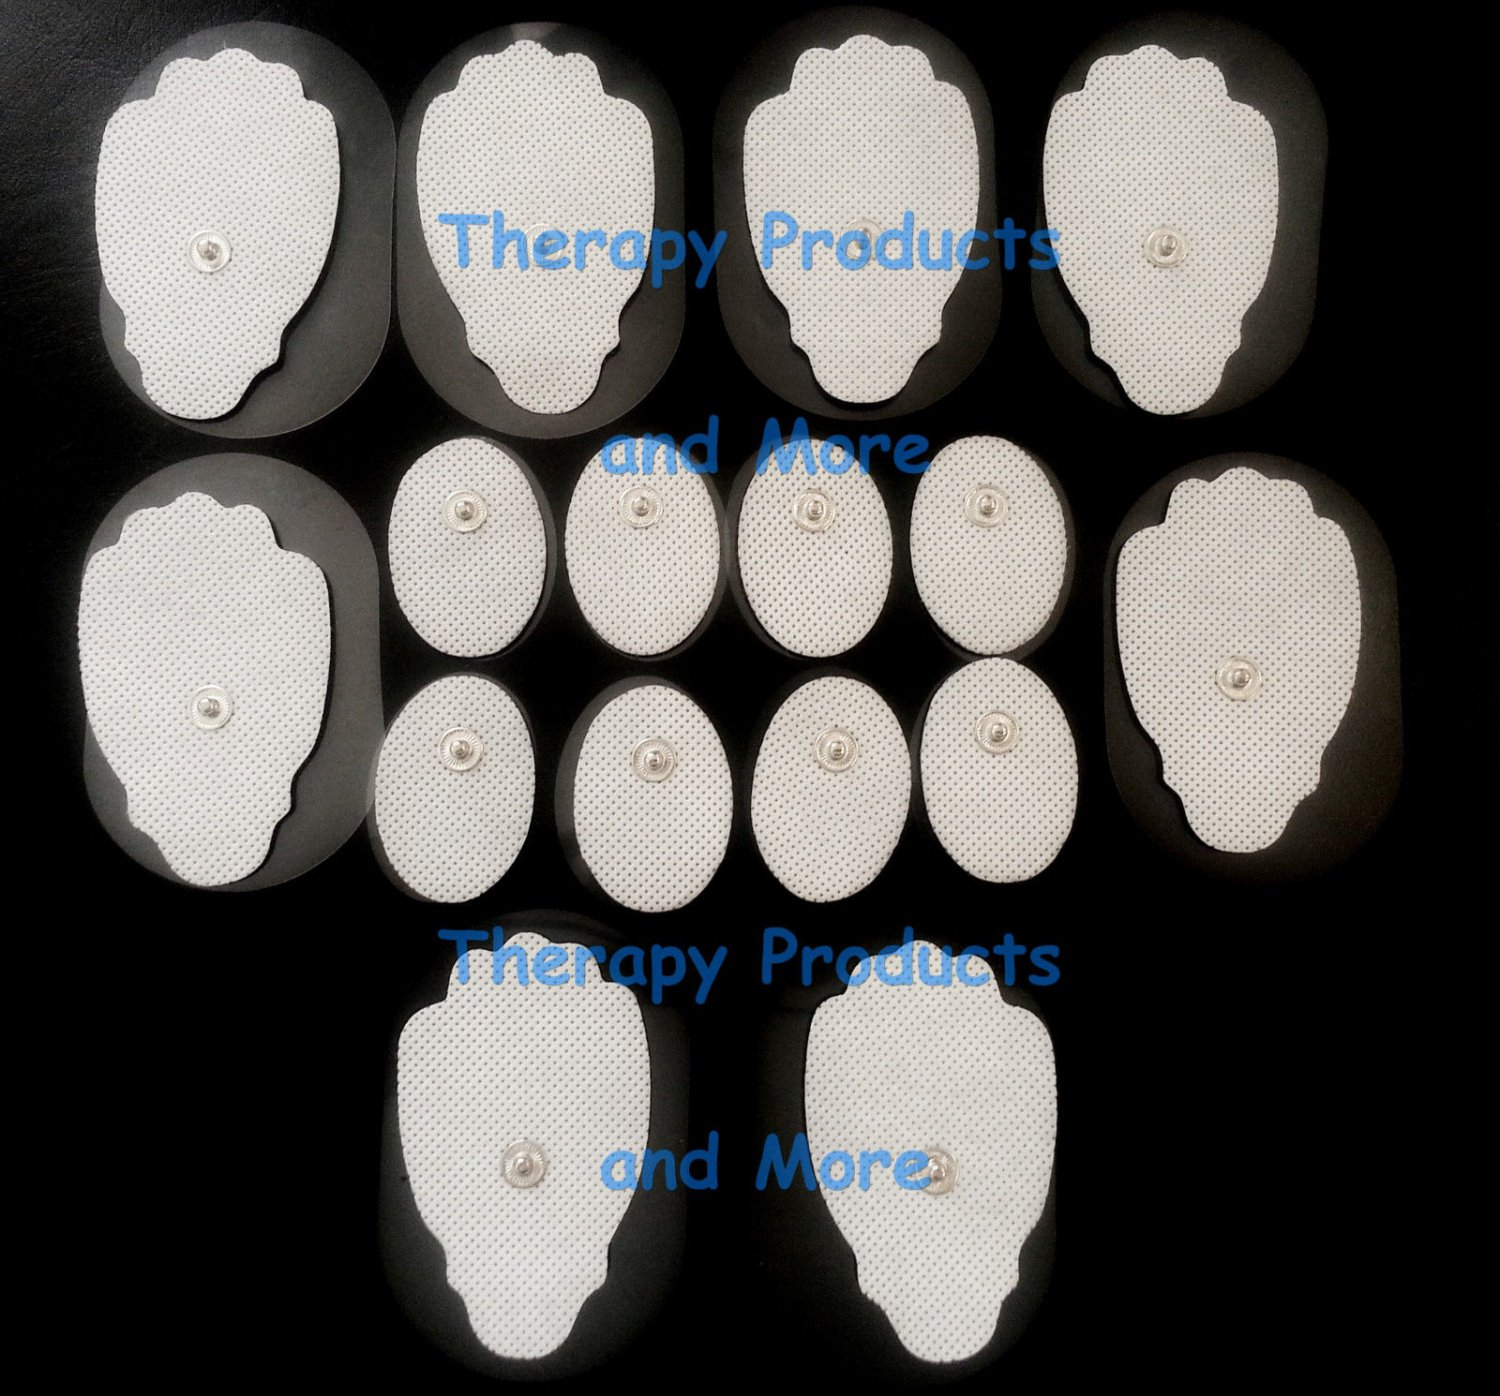 REPLACEMENT ELECTRODE PADS COMBO (8 LG, 8 SM OVAL) ISMART COMPATIBLE